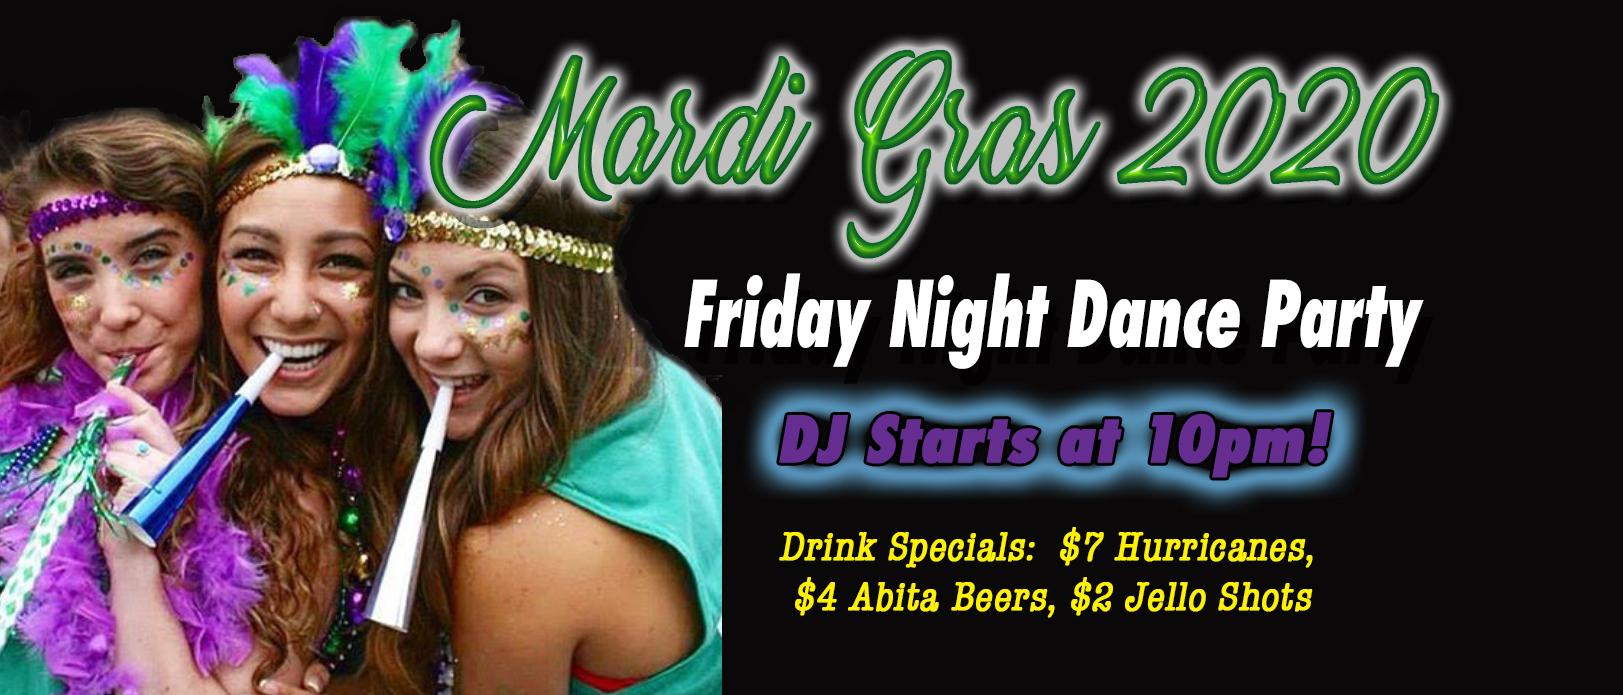 FRIDAY NIGHT MARDI GRAS PARTY AT THE BIG EASY - Downtown Raleigh